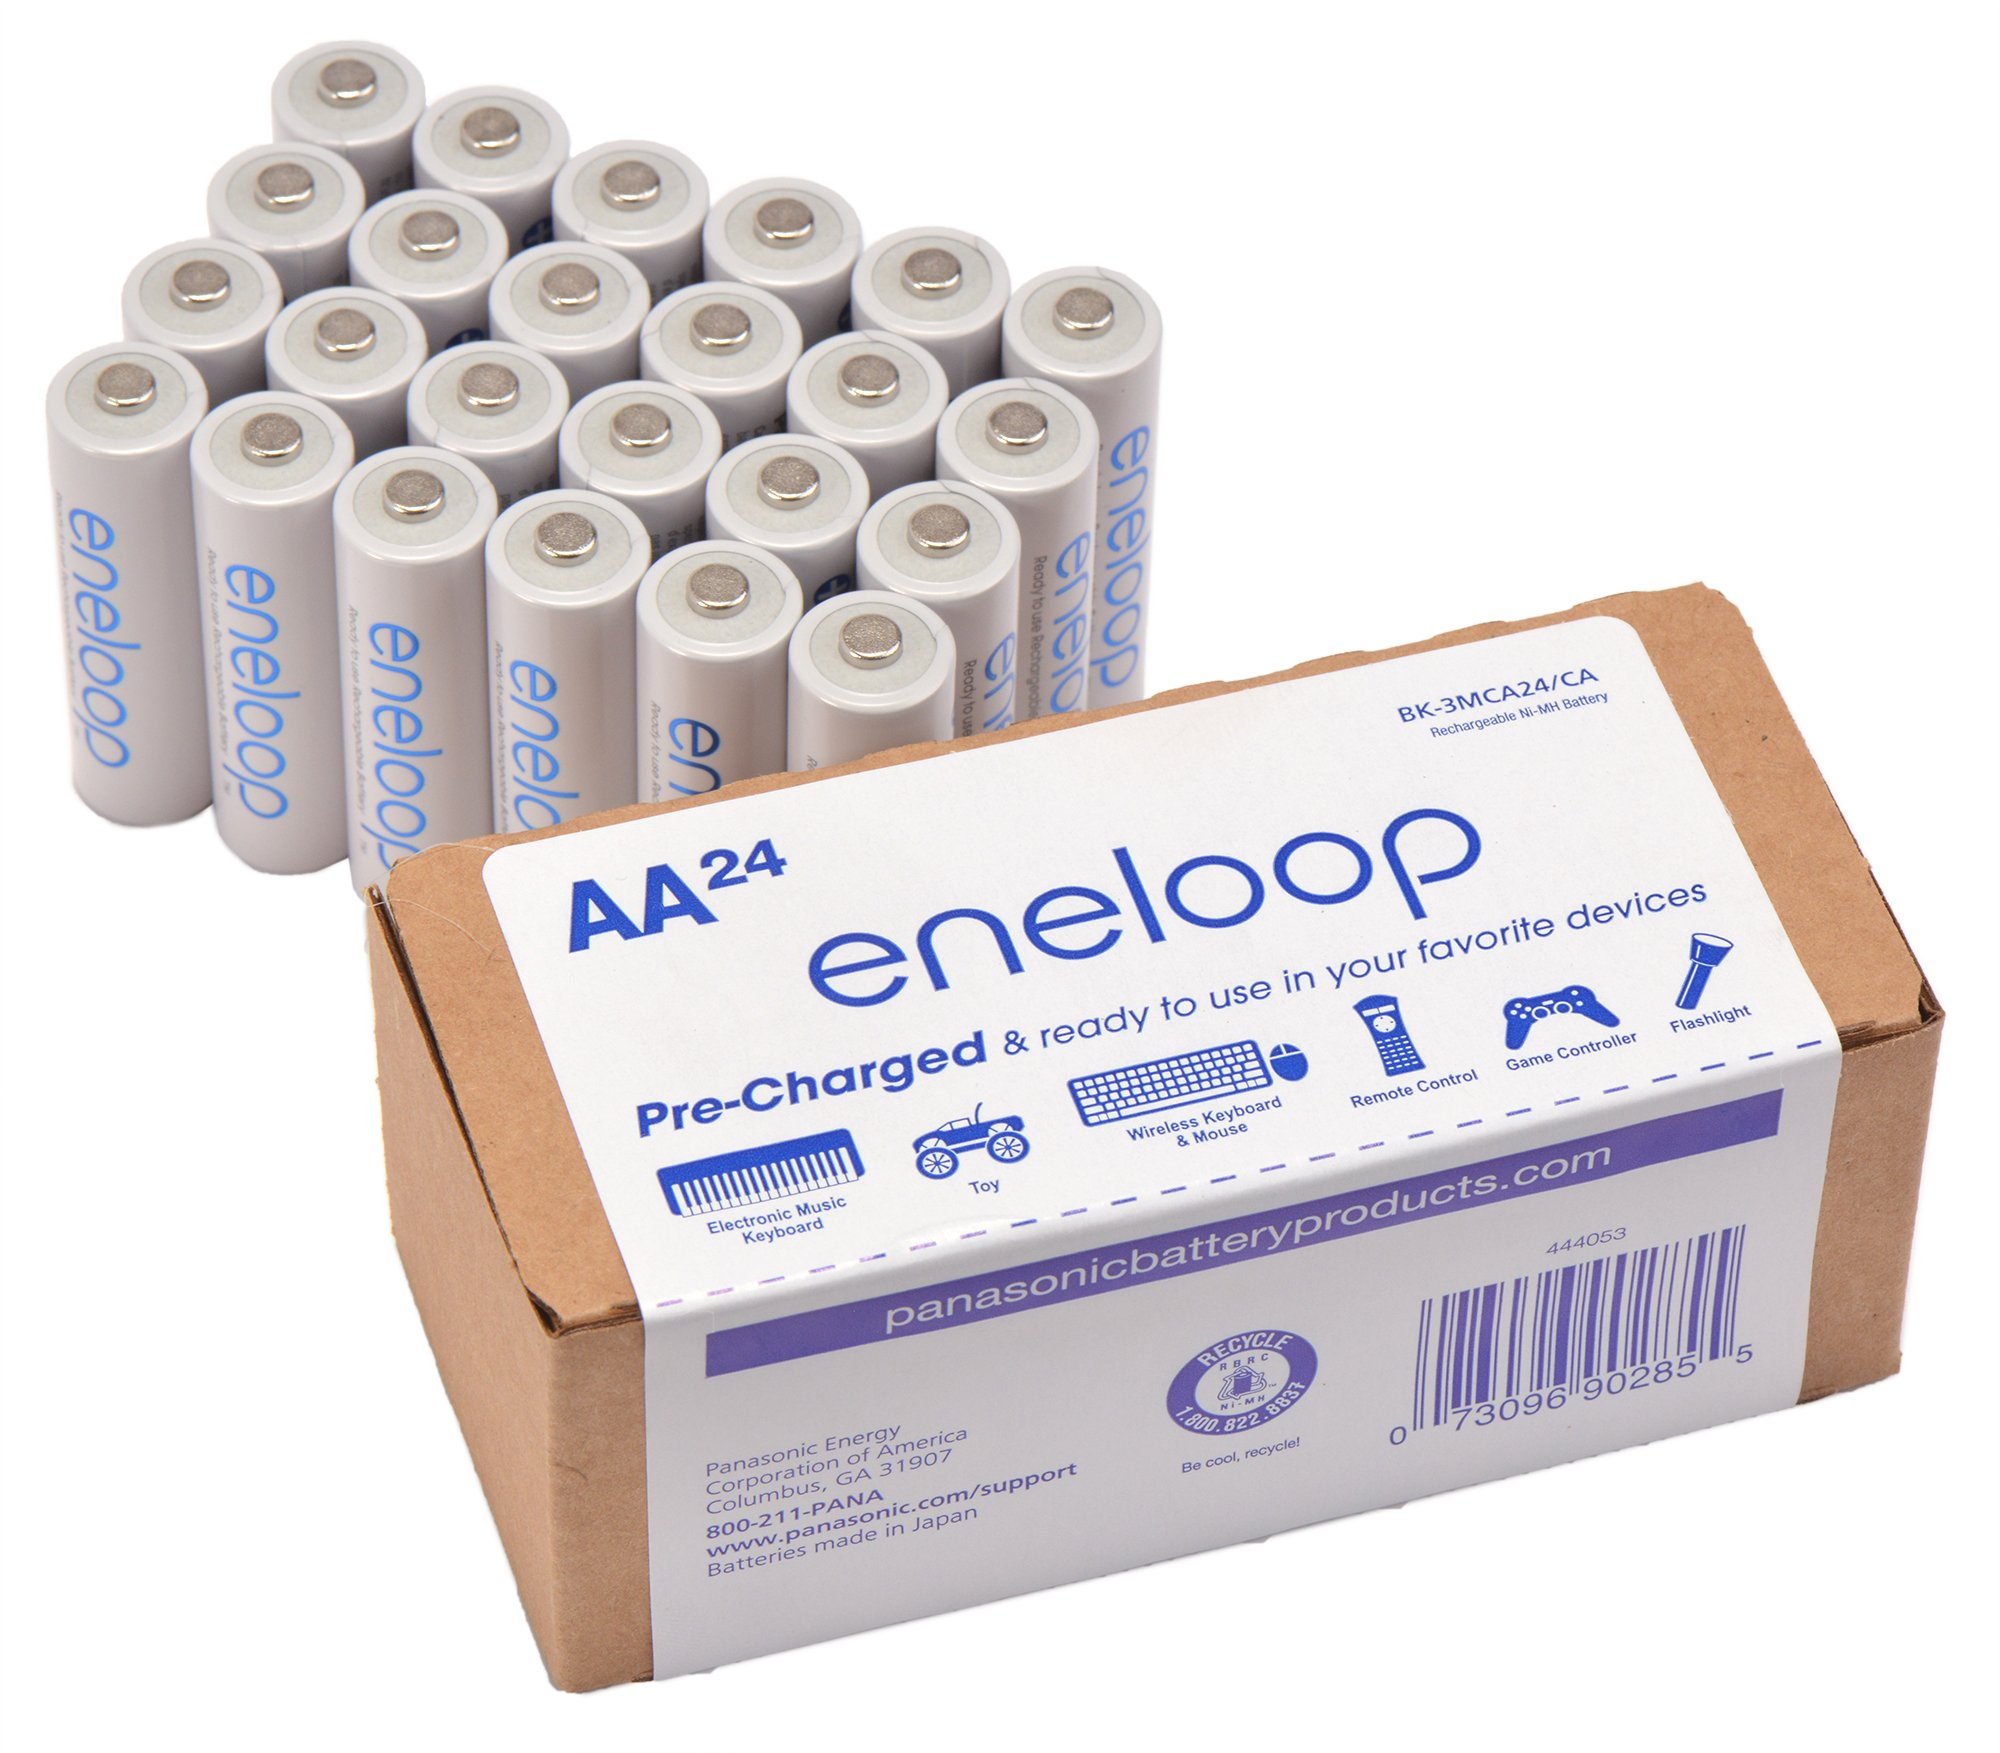 Panasonic BK-3MCA24/CA eneloop AA 2100 Cycle Ni-MH Pre-Charged Rechargeable Batteries 24 Pack